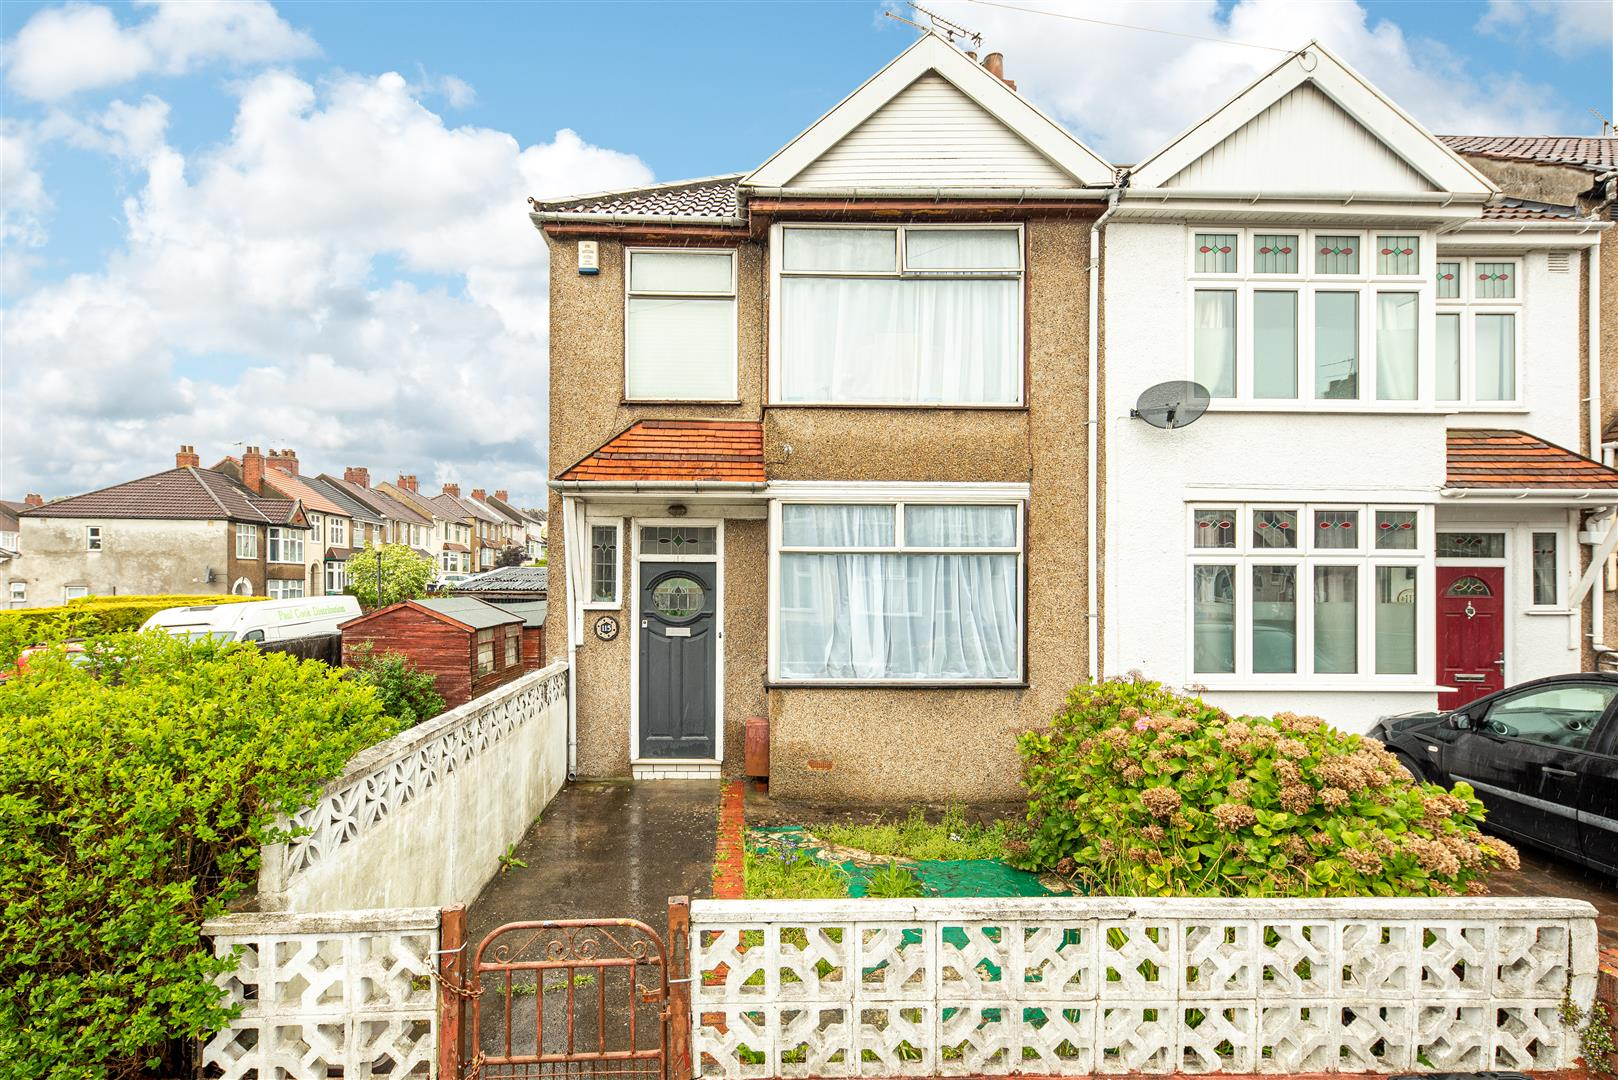 4 bed house to rent in Keys Avenue, Bristol, BS7